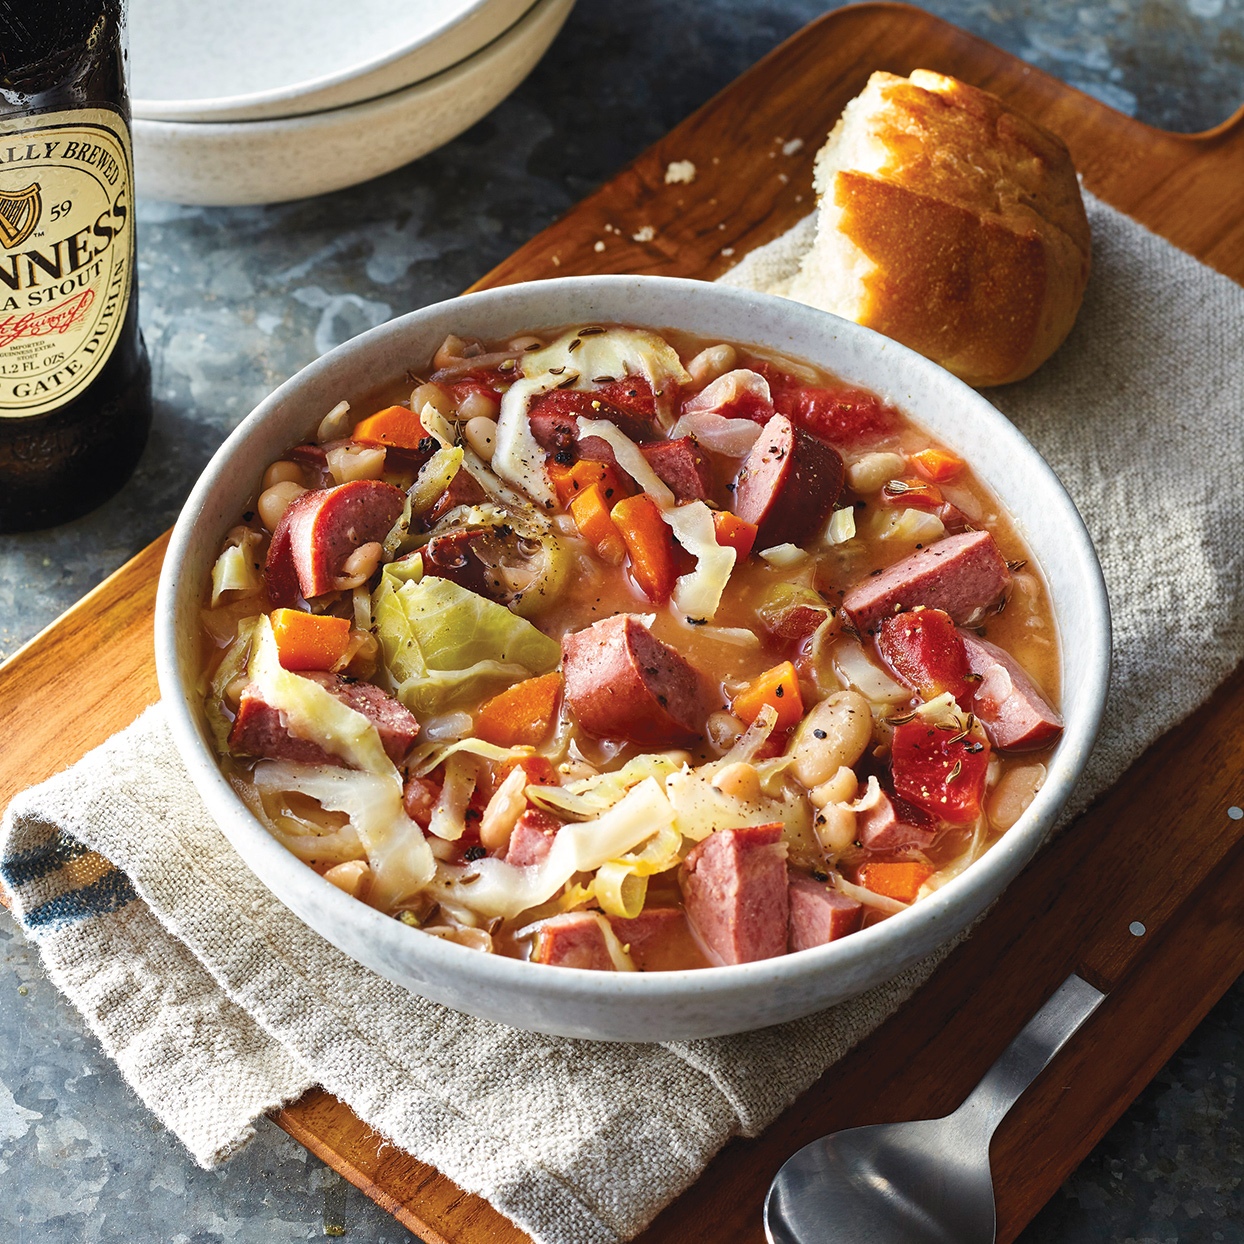 The abundance of springy sausage, soft beans and tender cabbage packed into this slow-cooker recipe means that each bite is loaded with varied texture. To make this recipe gluten free, use gluten-free sausage. Serve with bread and Guinness, if desired.